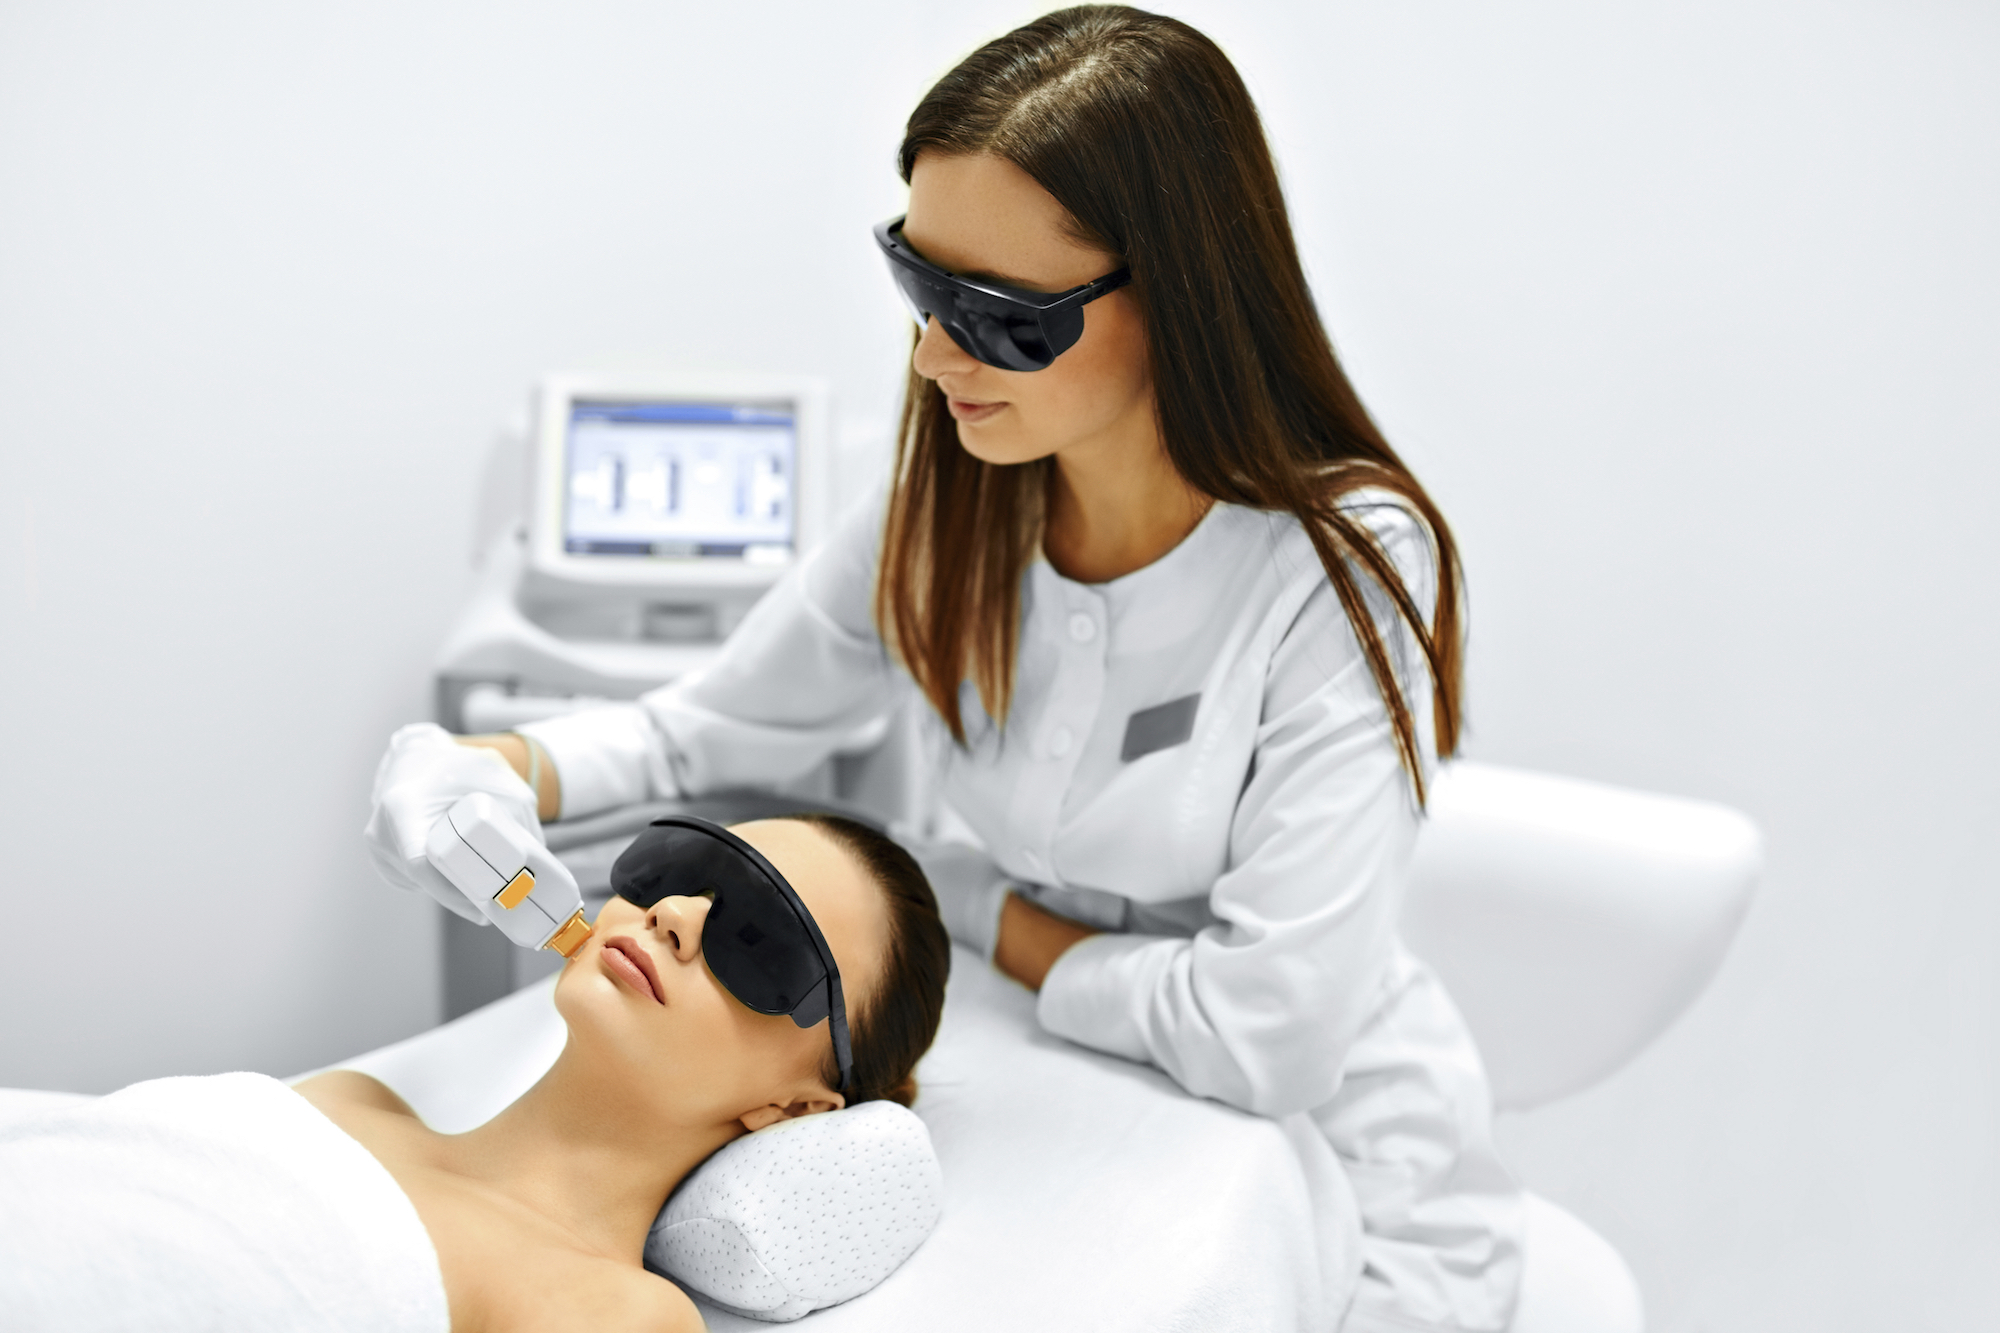 technician performing laser therapy to the face of a relaxed female patient, both wearing protective eyewear